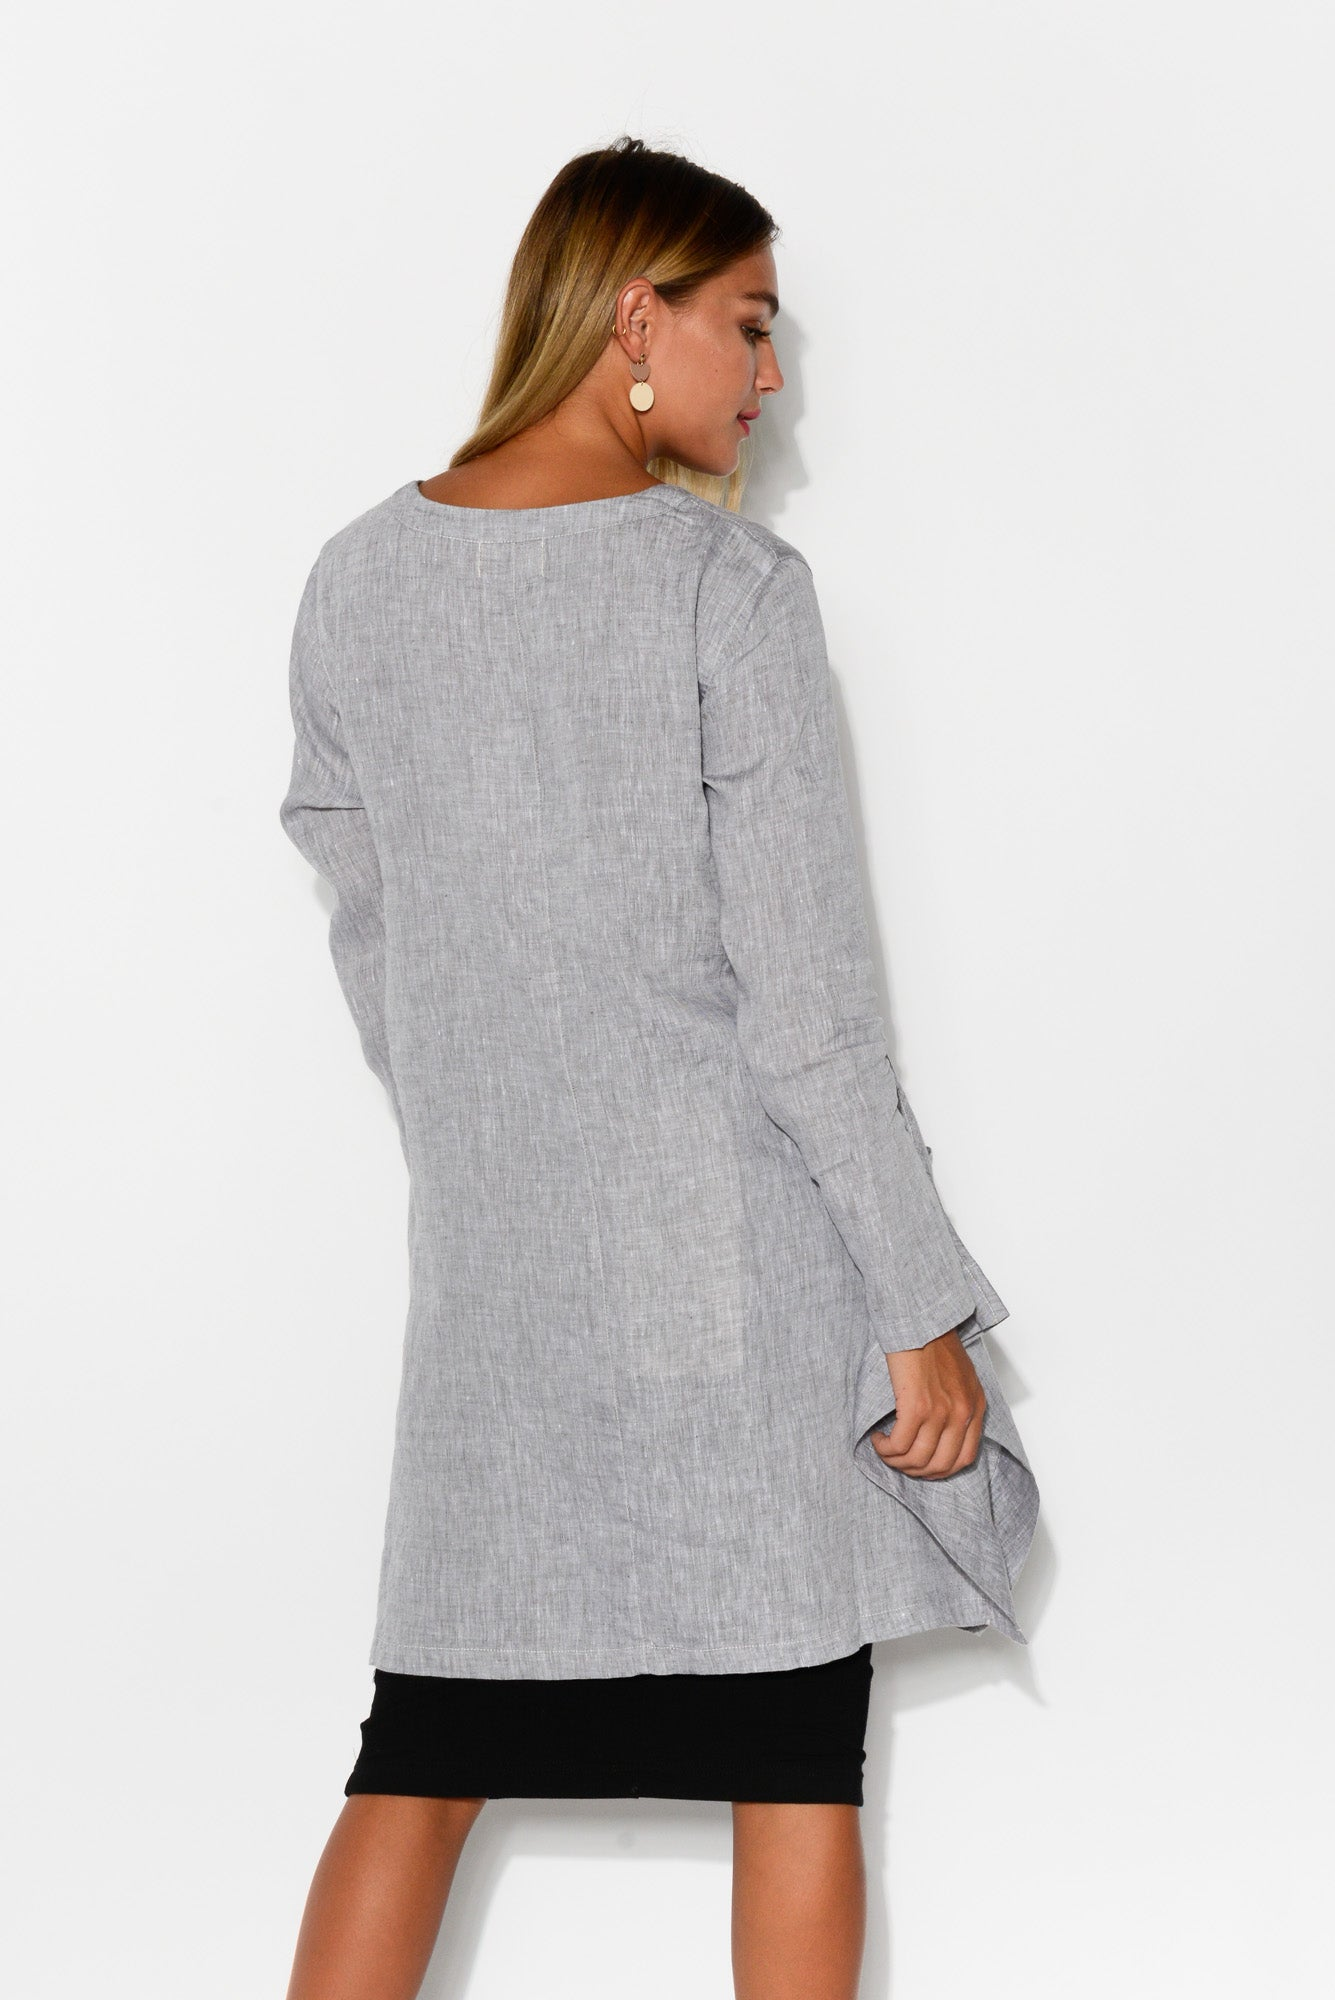 Ash Grey Linen Bell Tunic - Blue Bungalow